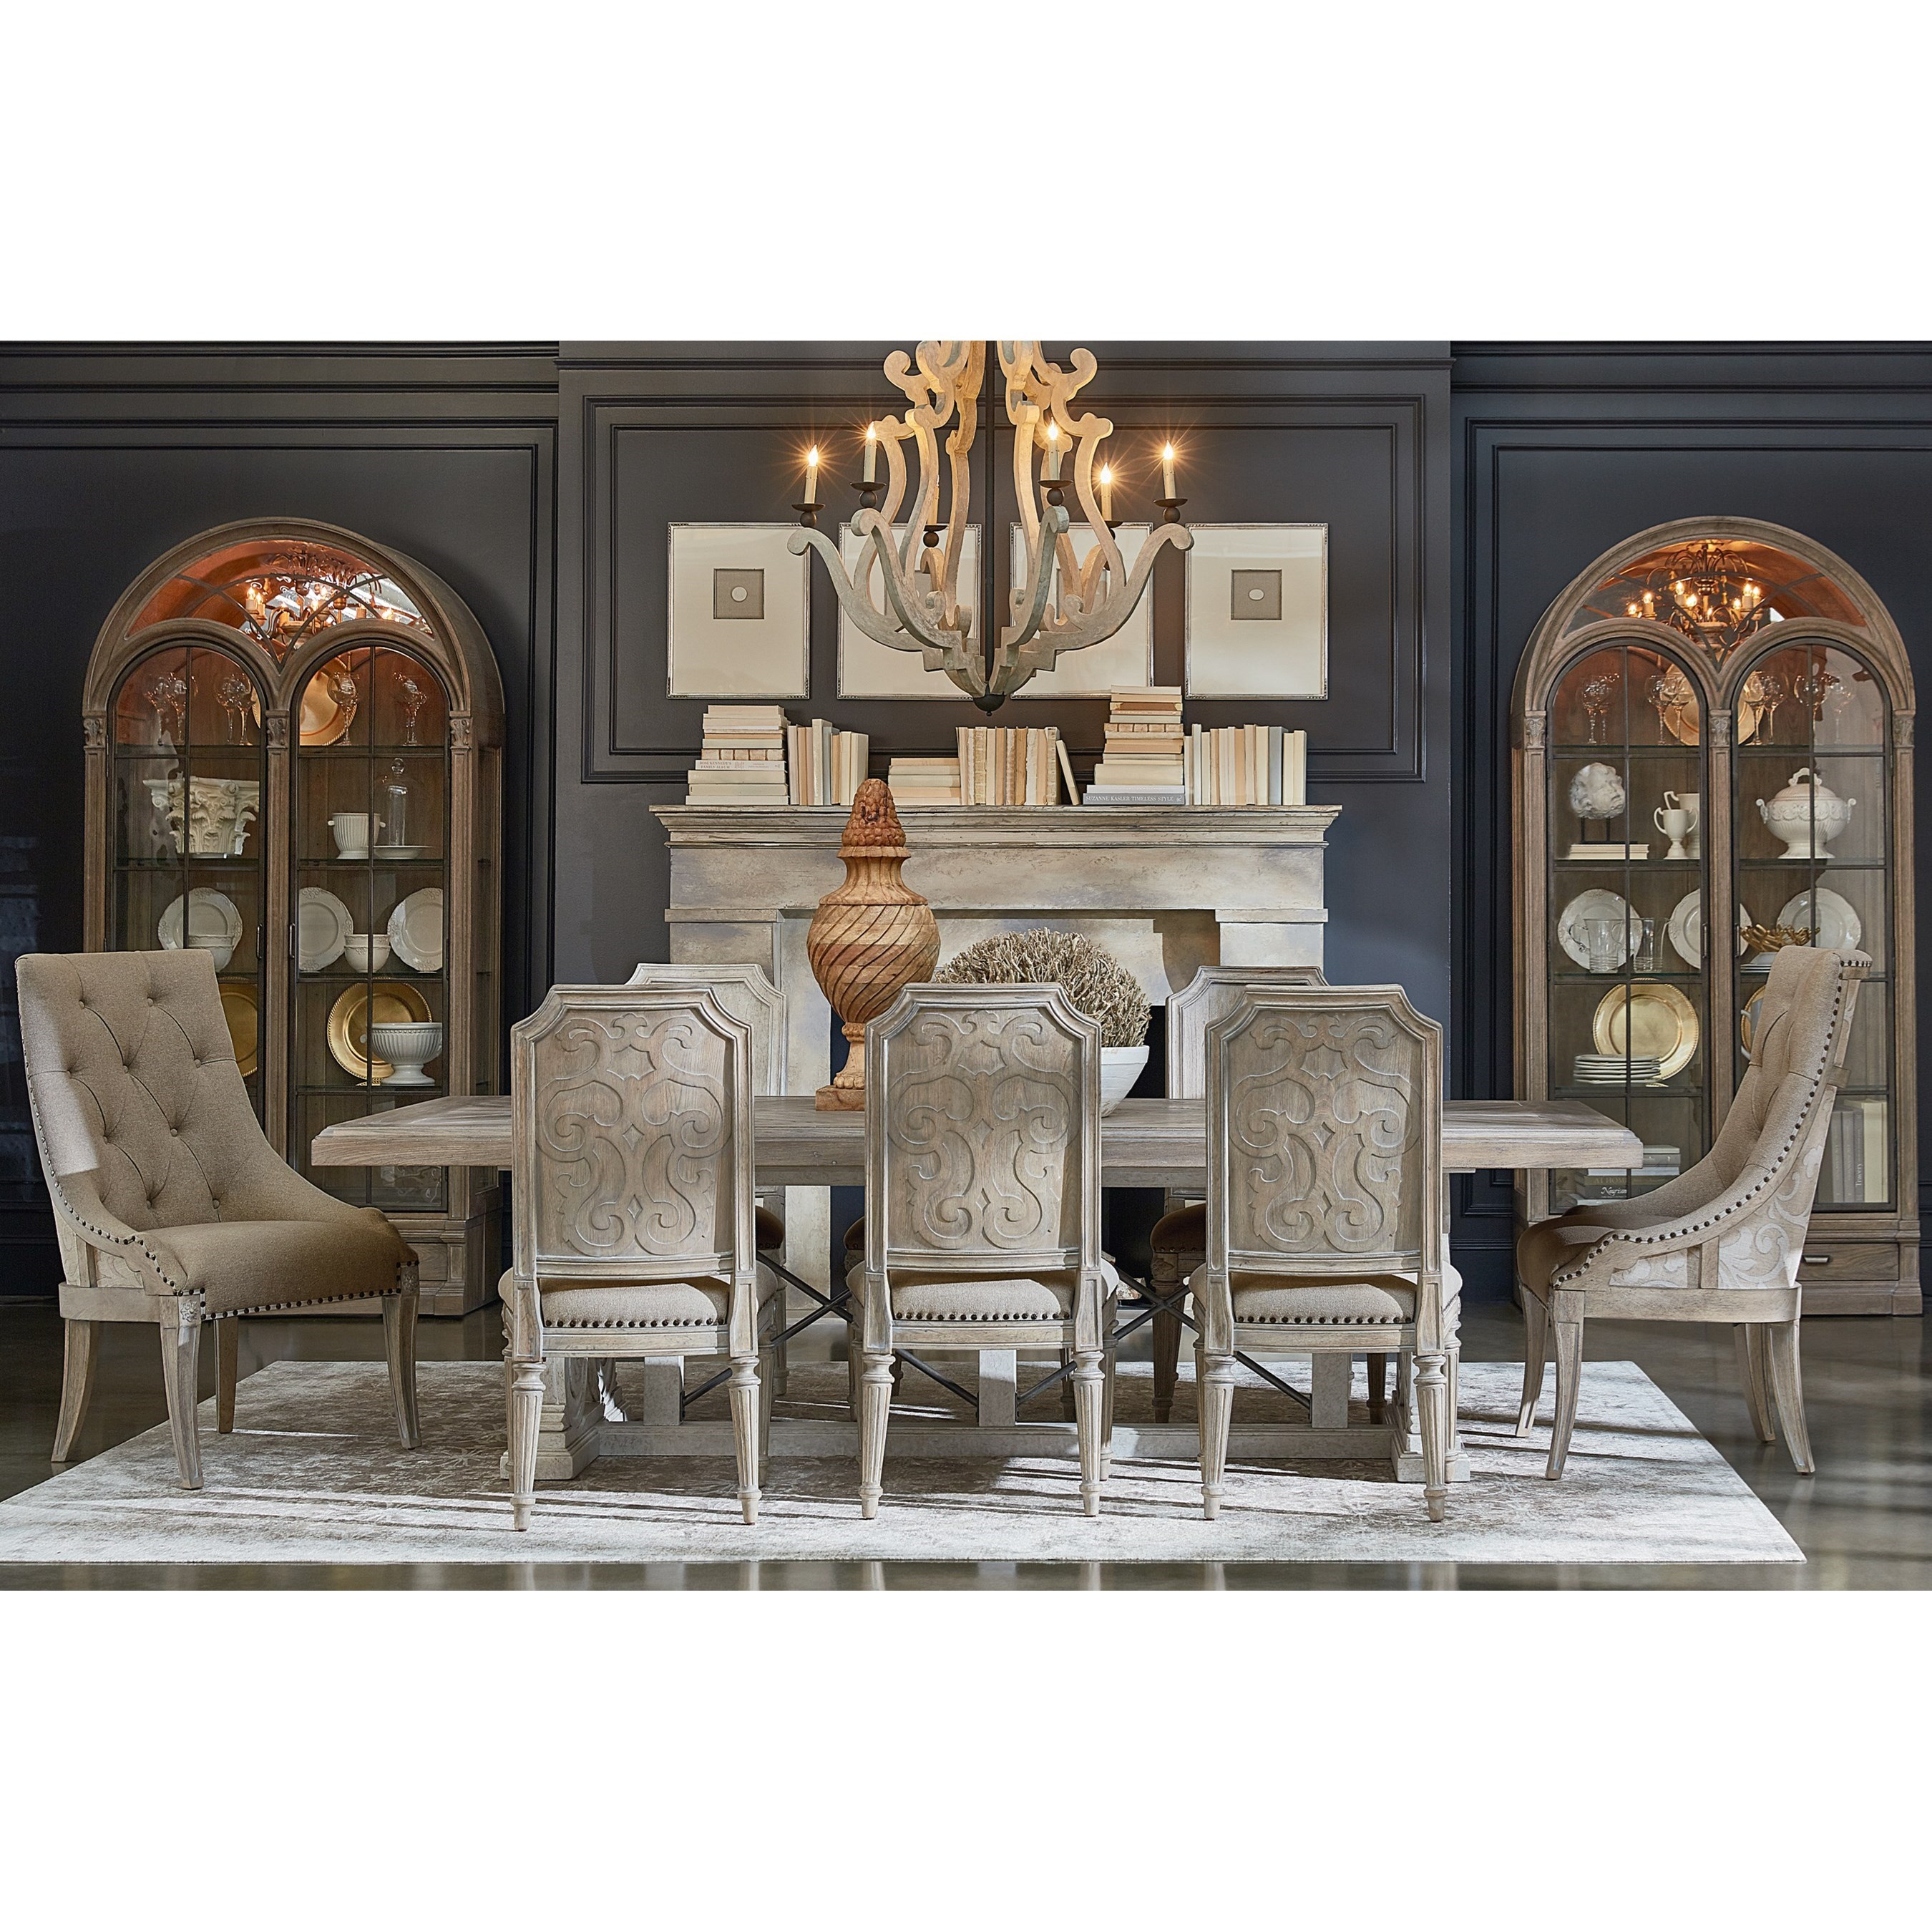 reeves host chair with deconstructed looka.r.t. furniture inc